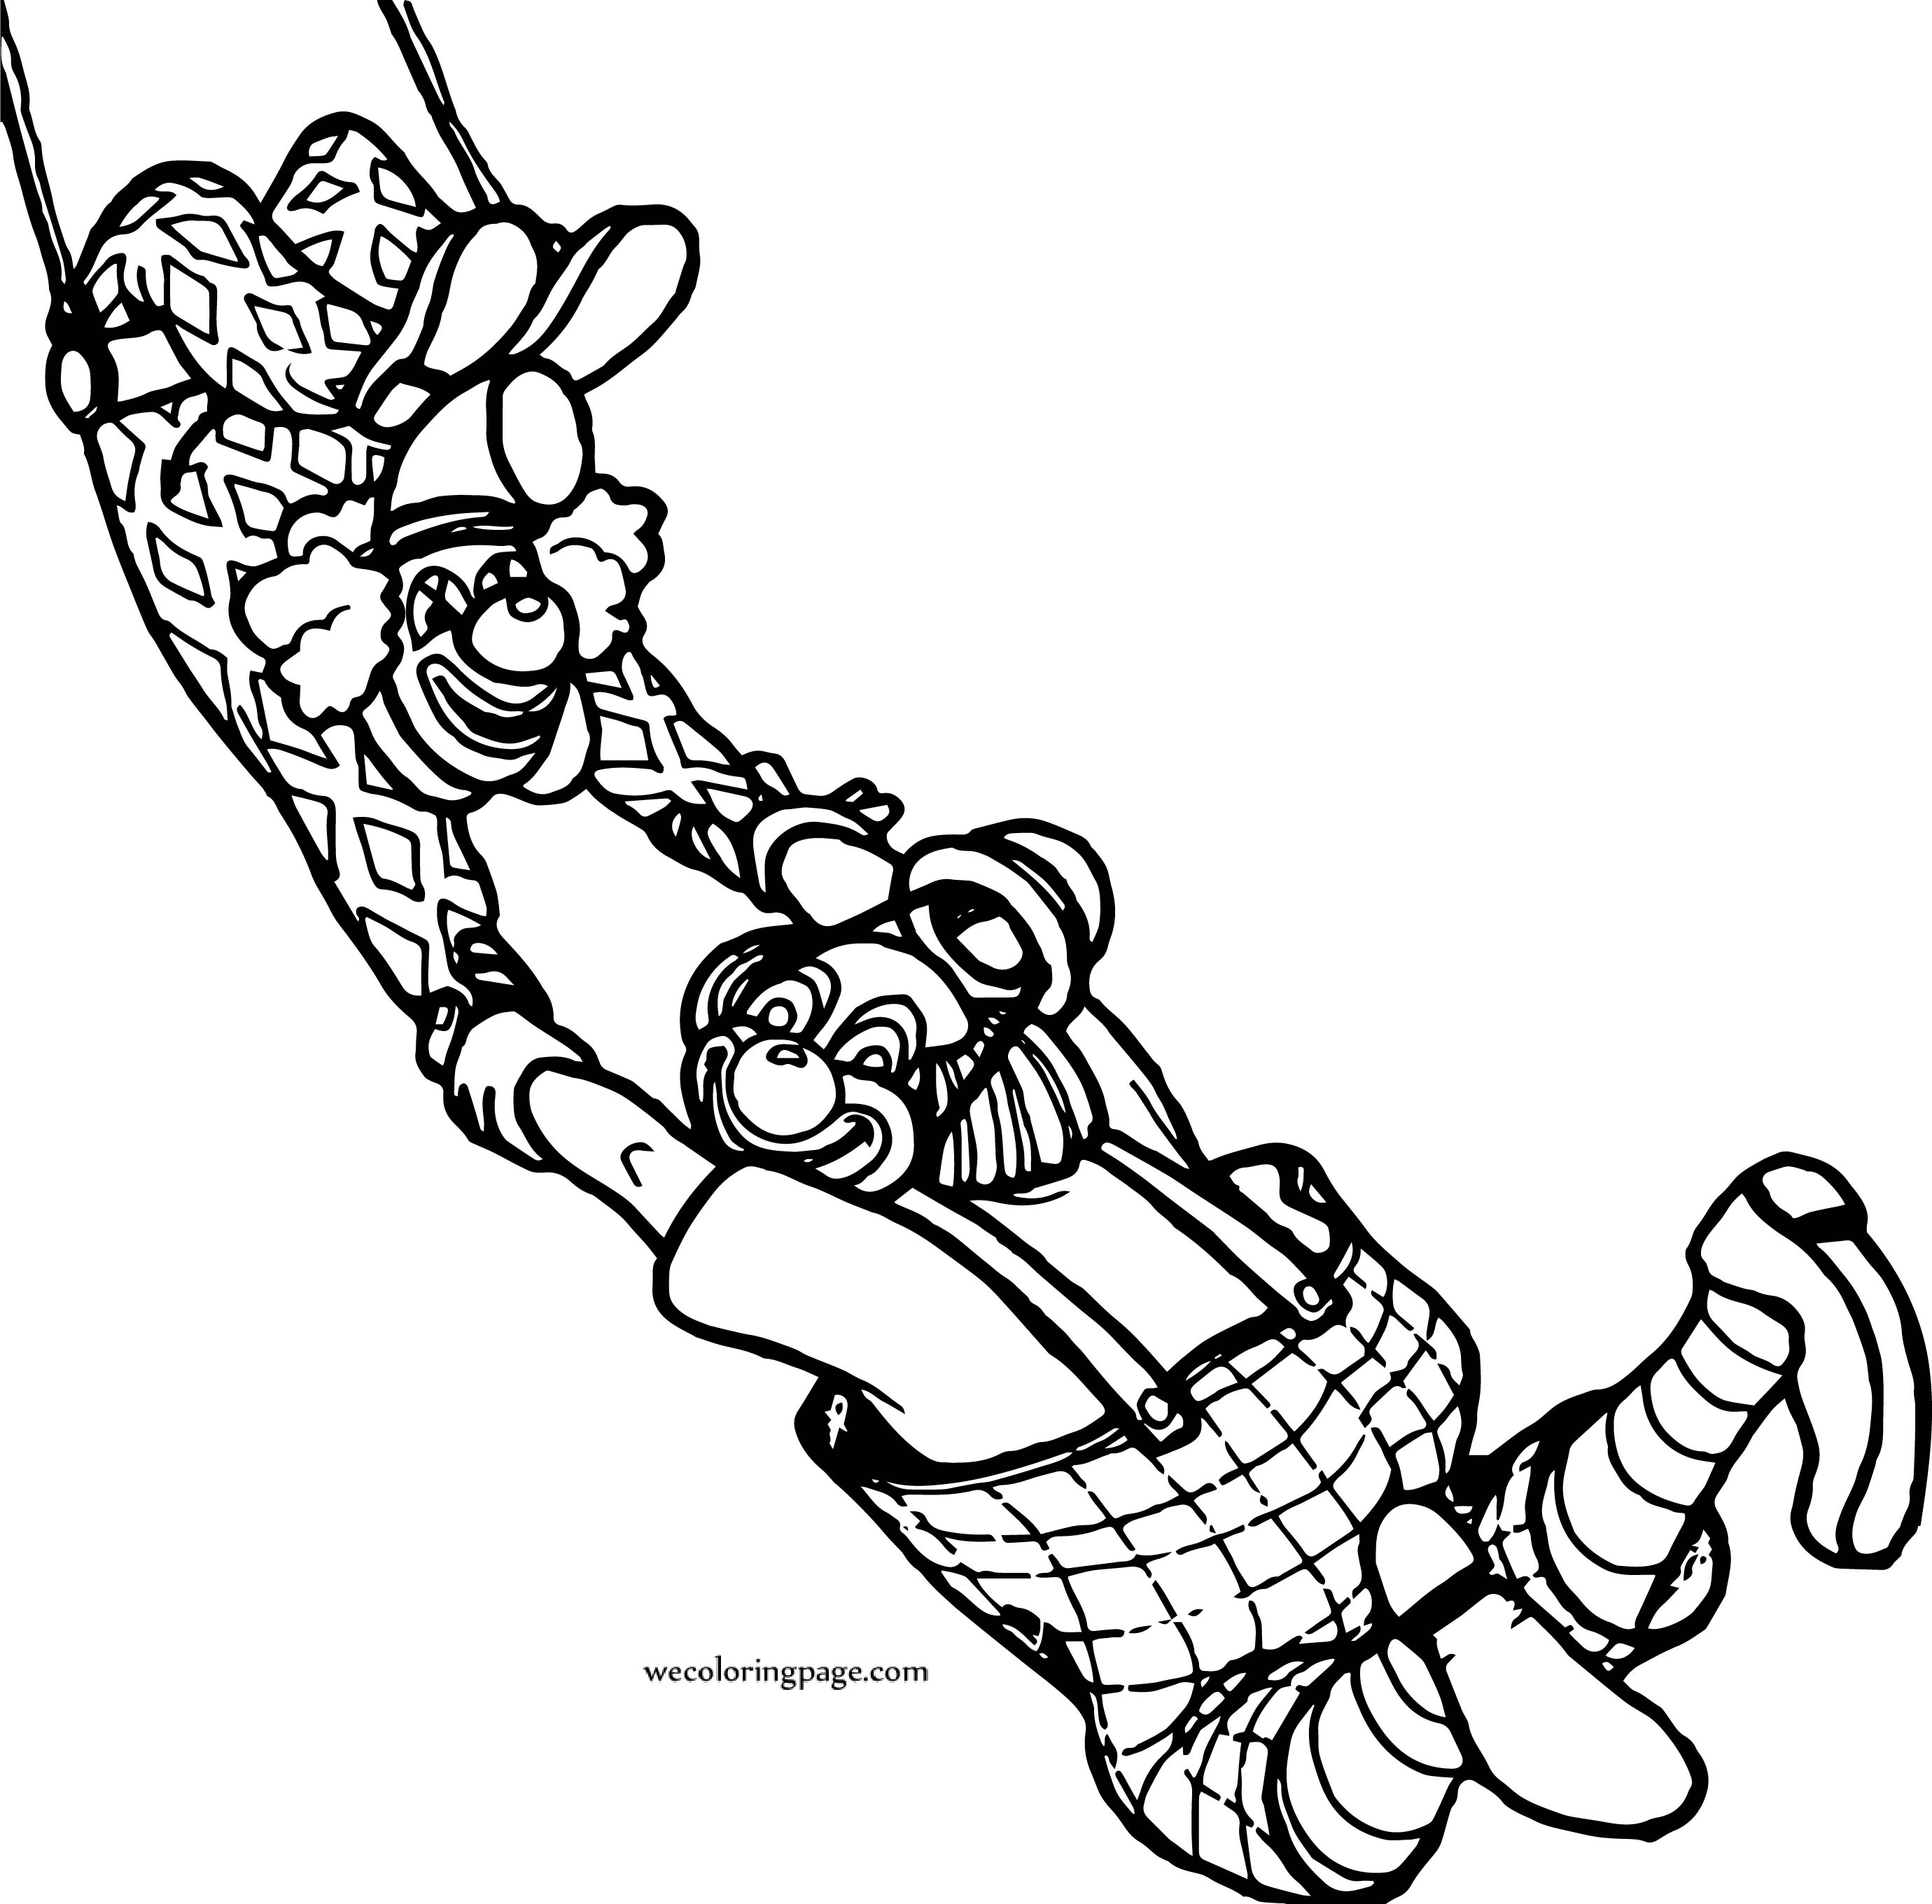 Clowns Circus Animals Coloring Page | Wecoloringpage.com